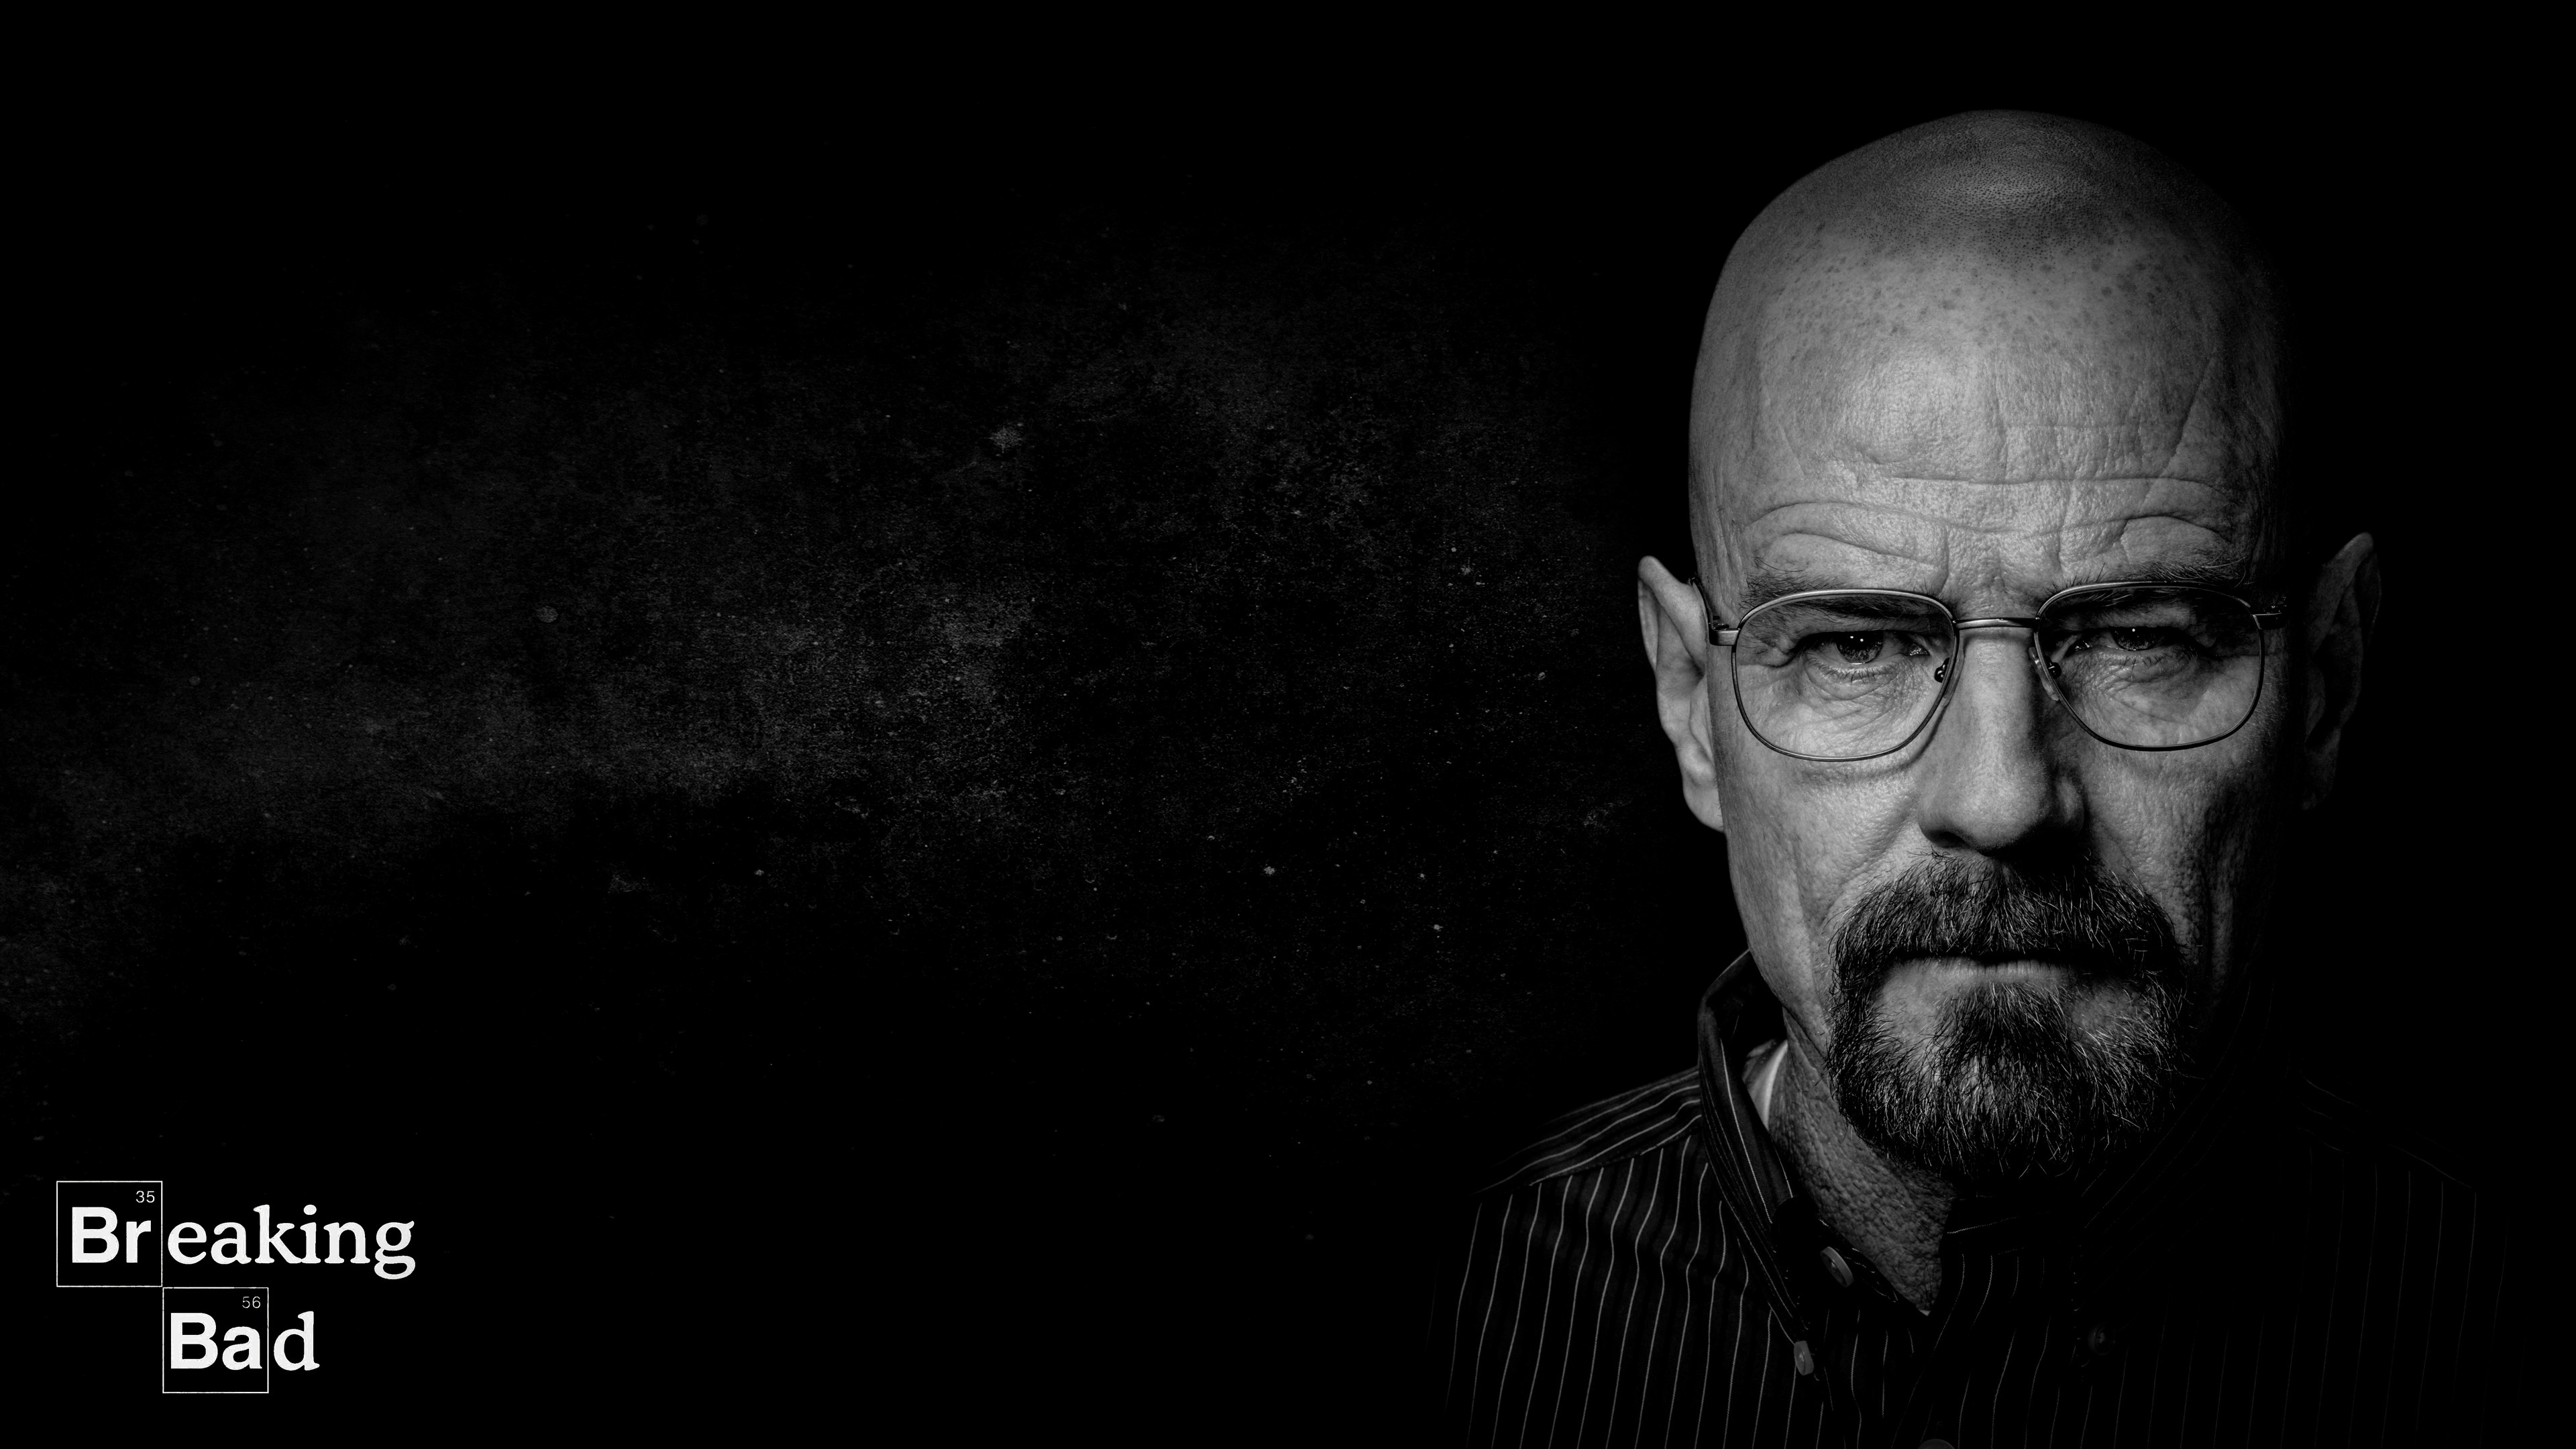 800x1280 walter white from breaking bad nexus 7samsung galaxy tab walter white from breaking bad nexus 7samsung galaxy tab 10note android tablets voltagebd Choice Image